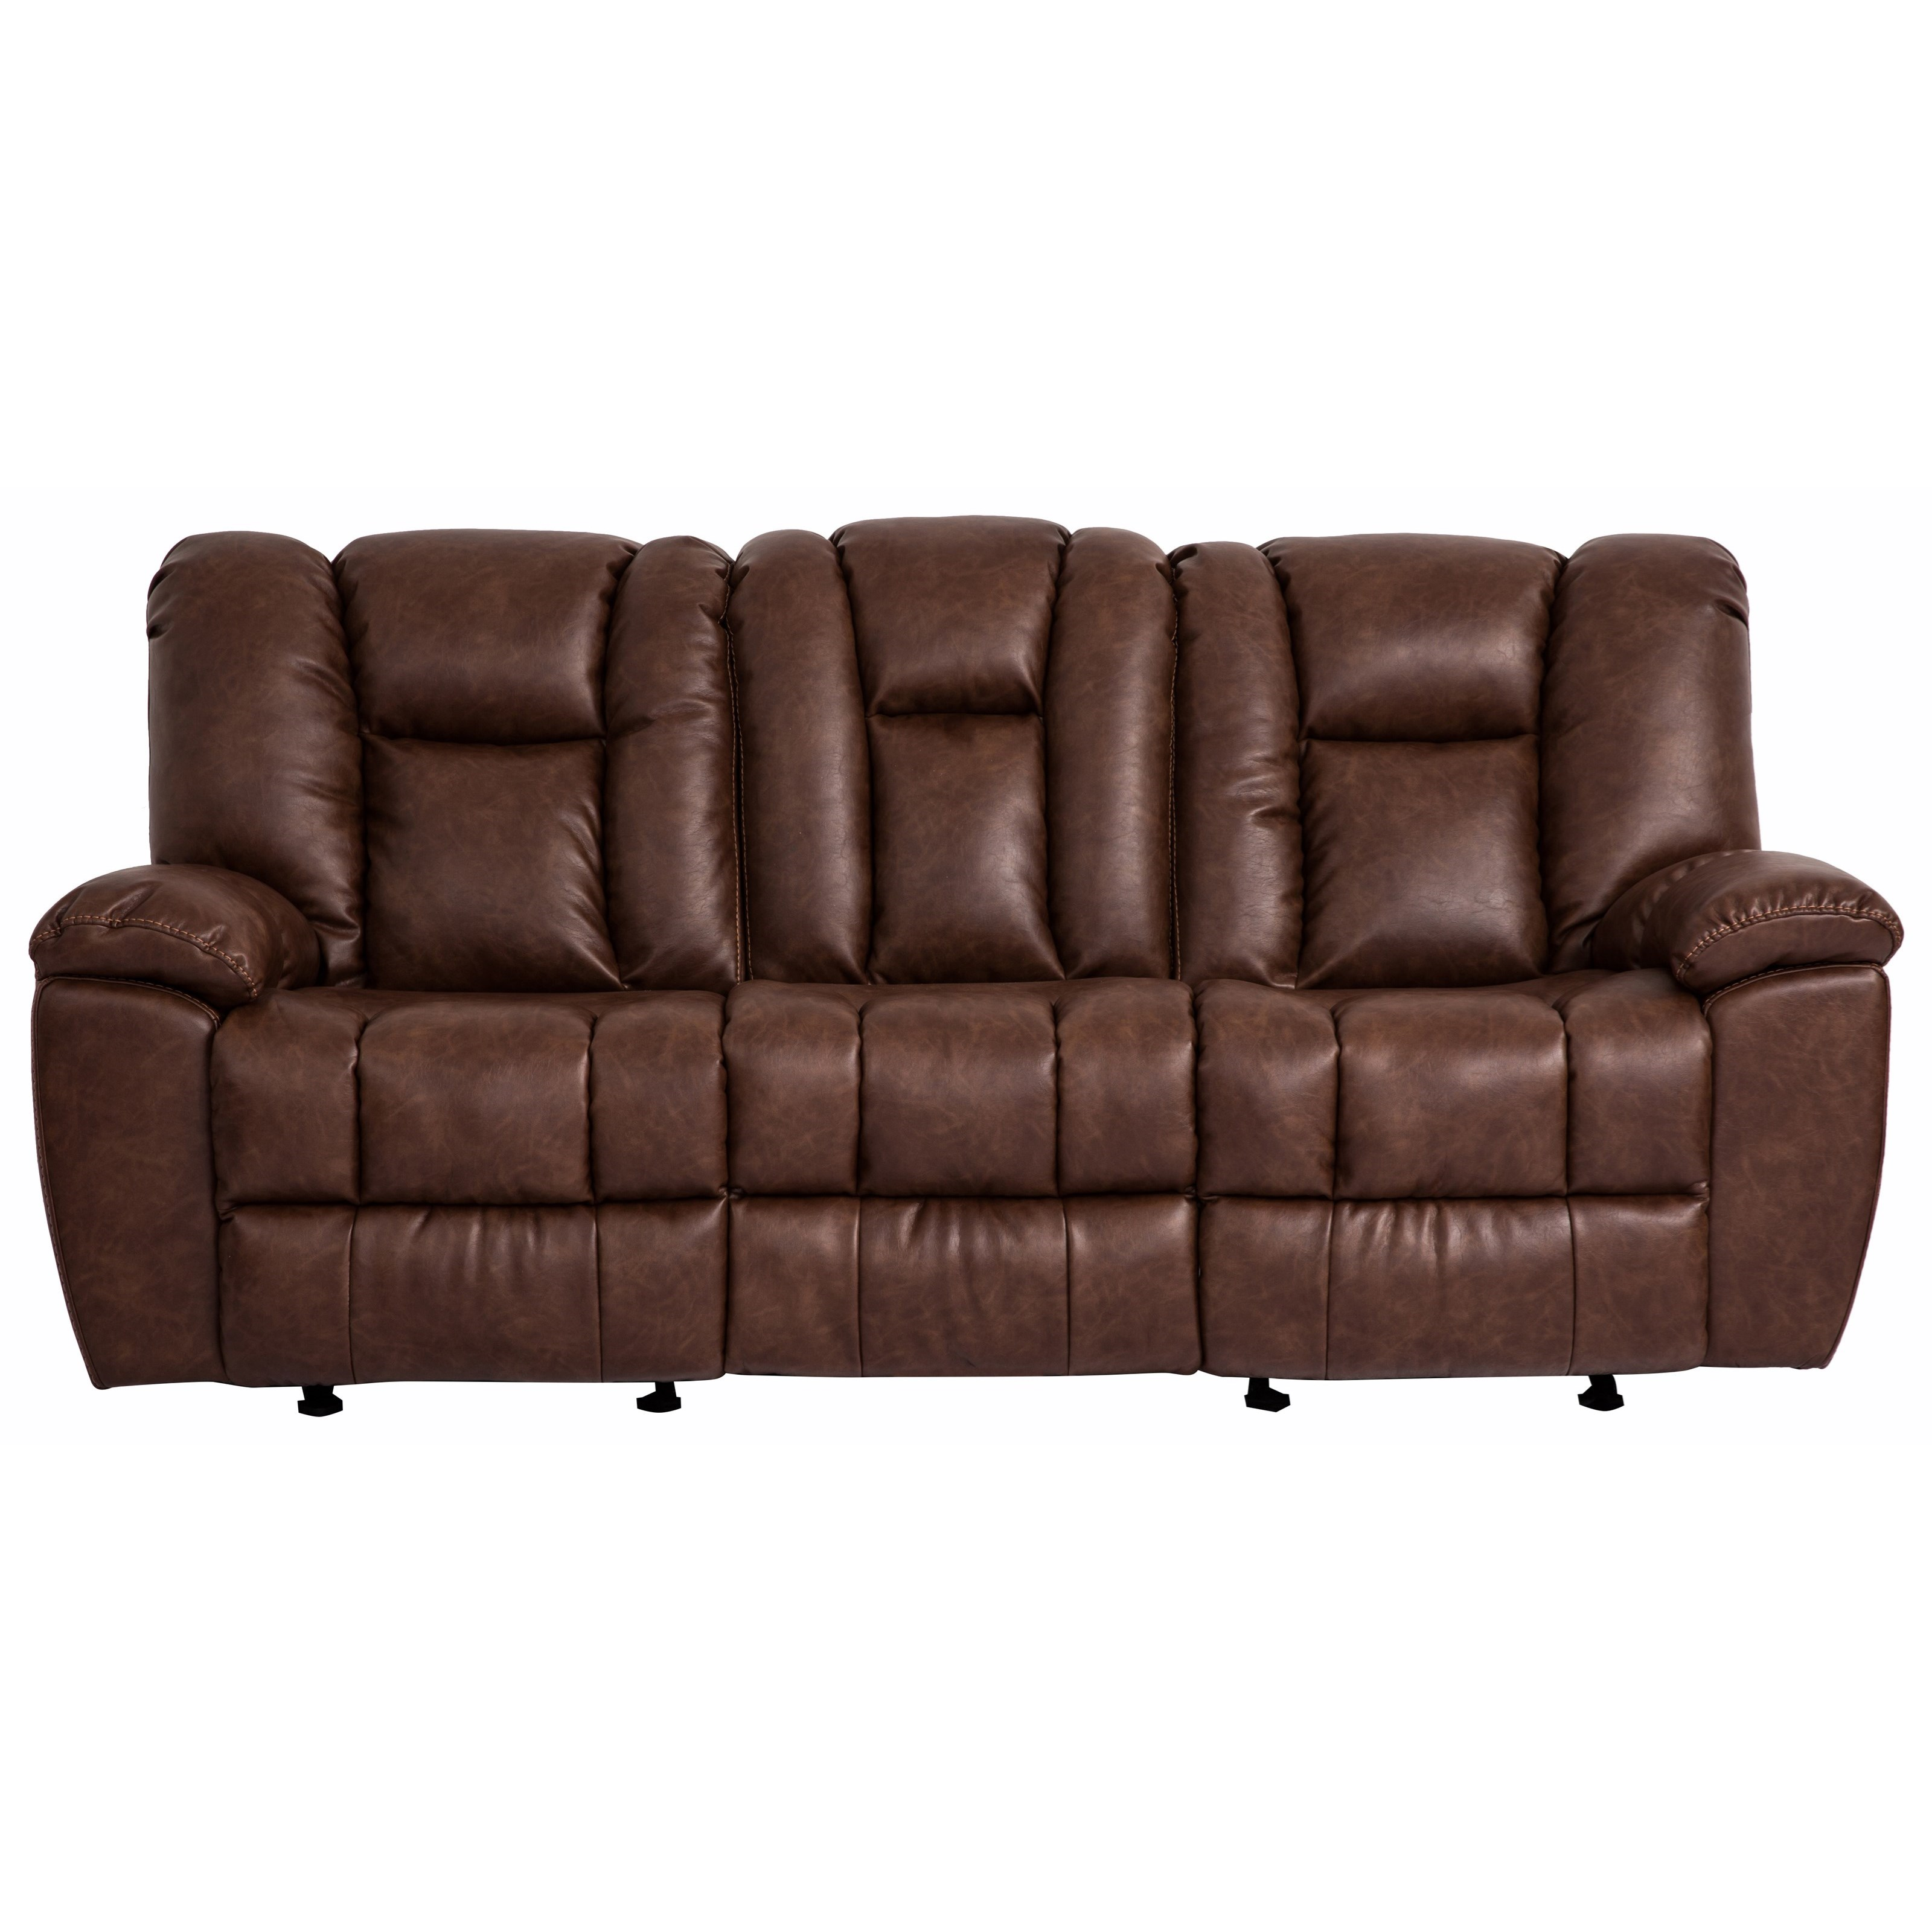 1017M Reclining Sofa by Cheers Sofa at Lagniappe Home Store